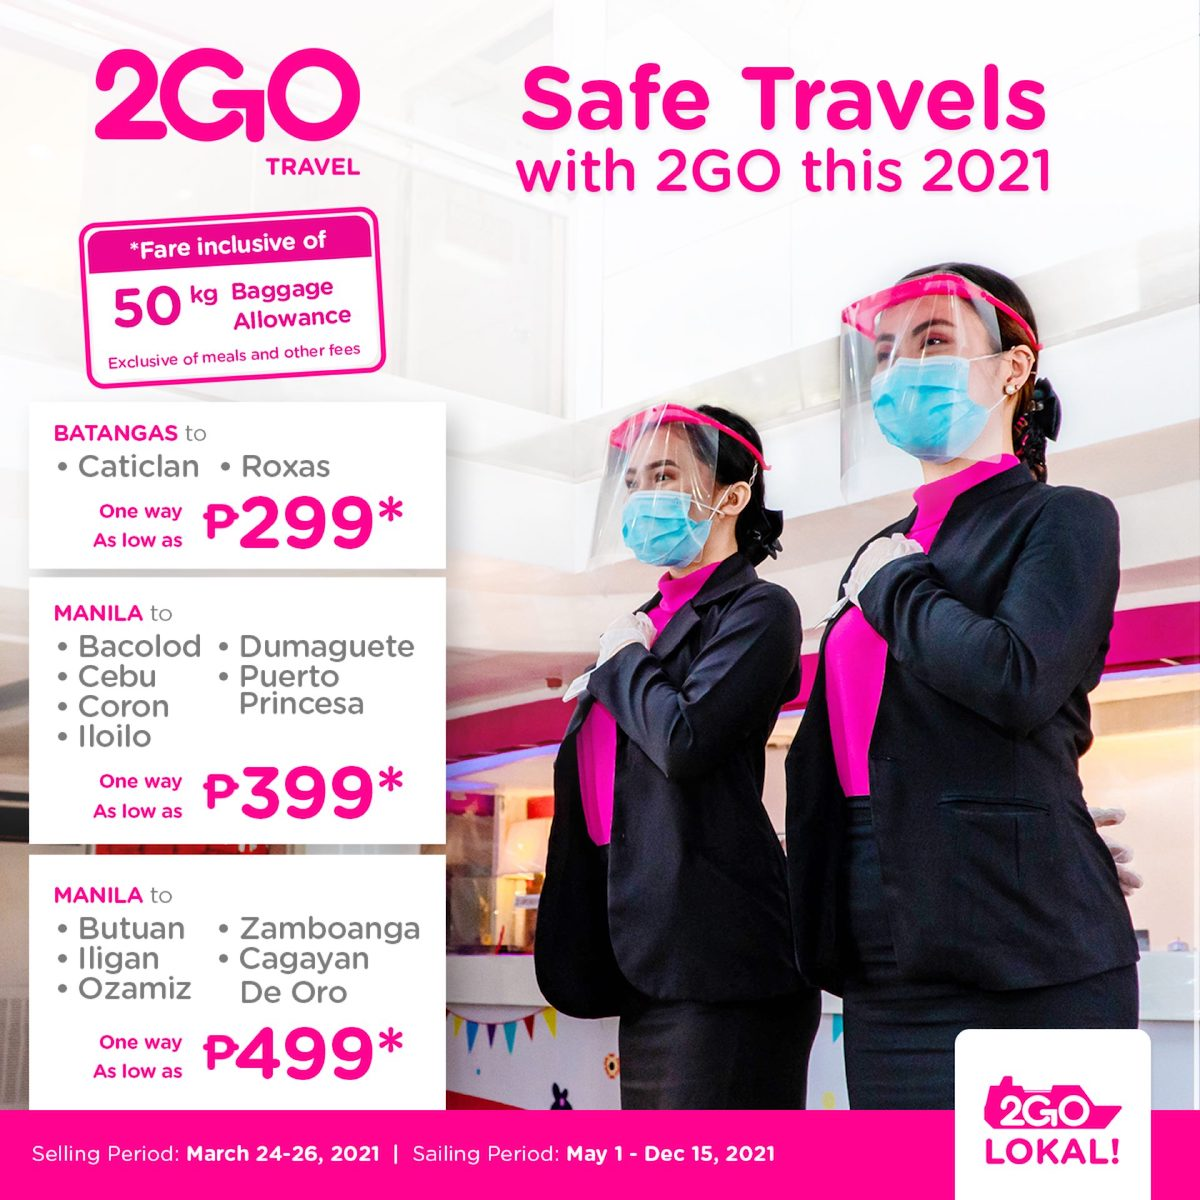 2GO Travel releases new travel protocols, offers free unli rebooking